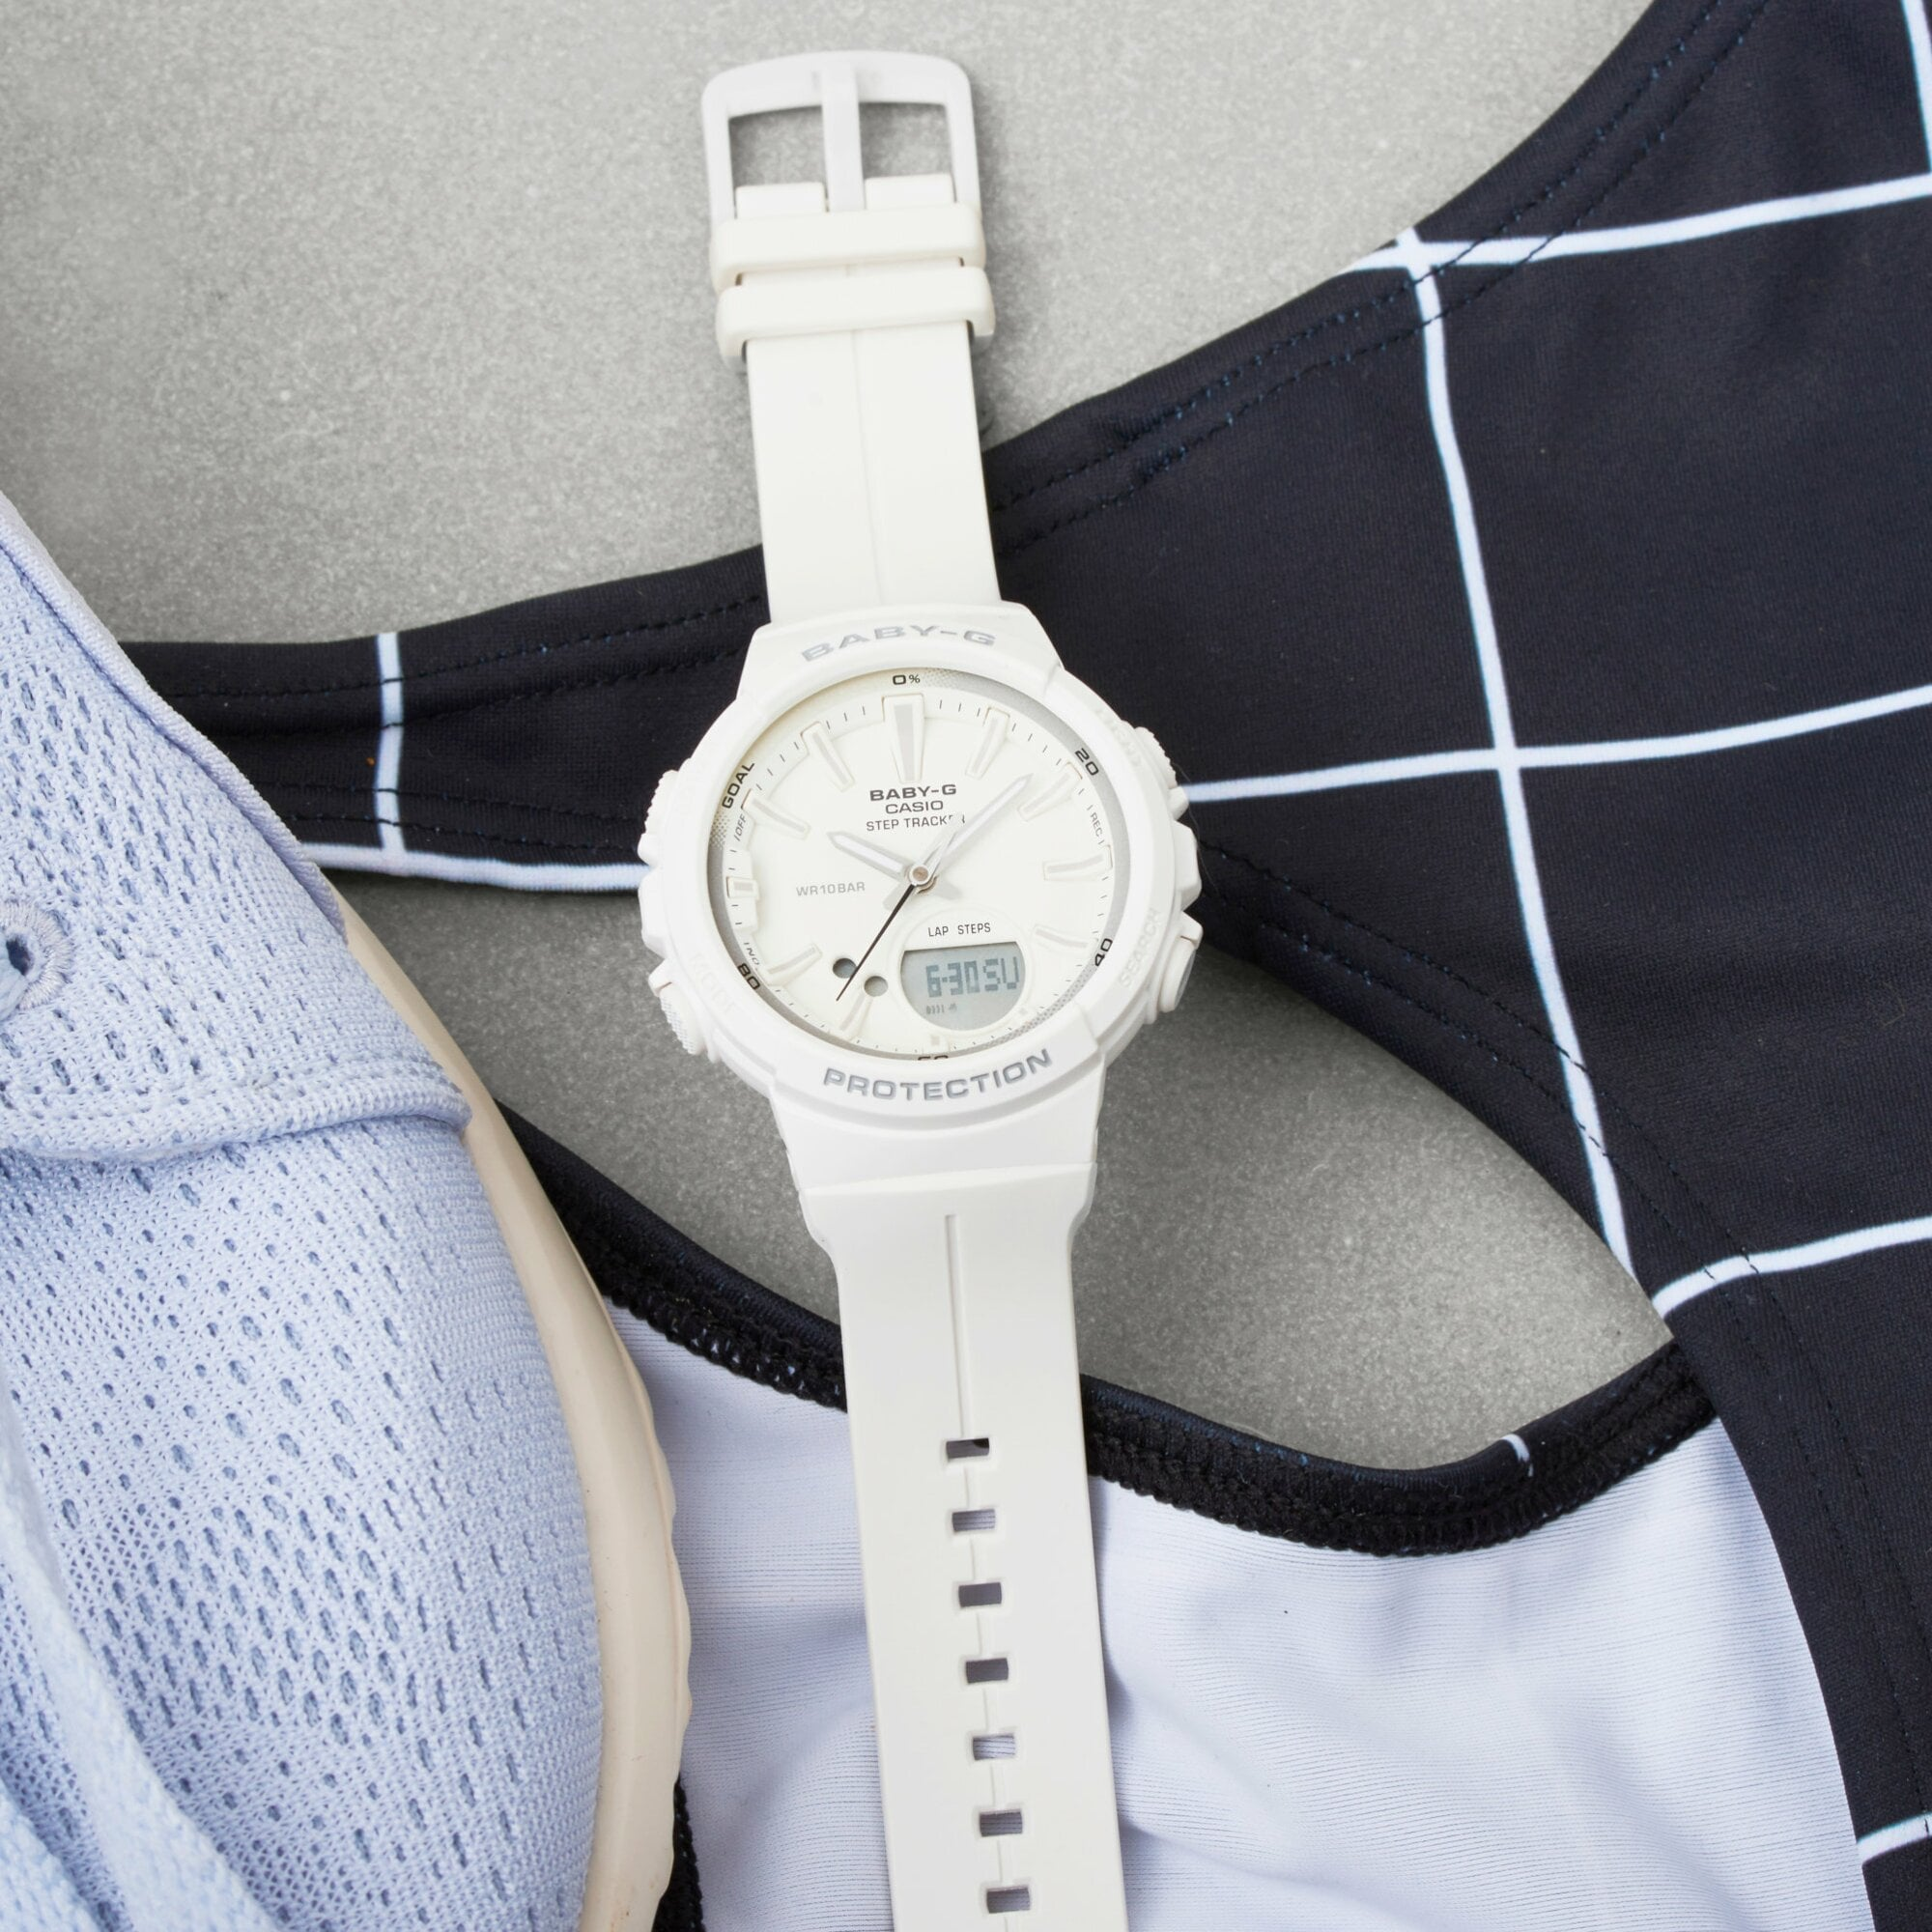 BGS-100SC-7AER BABY-G Athleisure Style